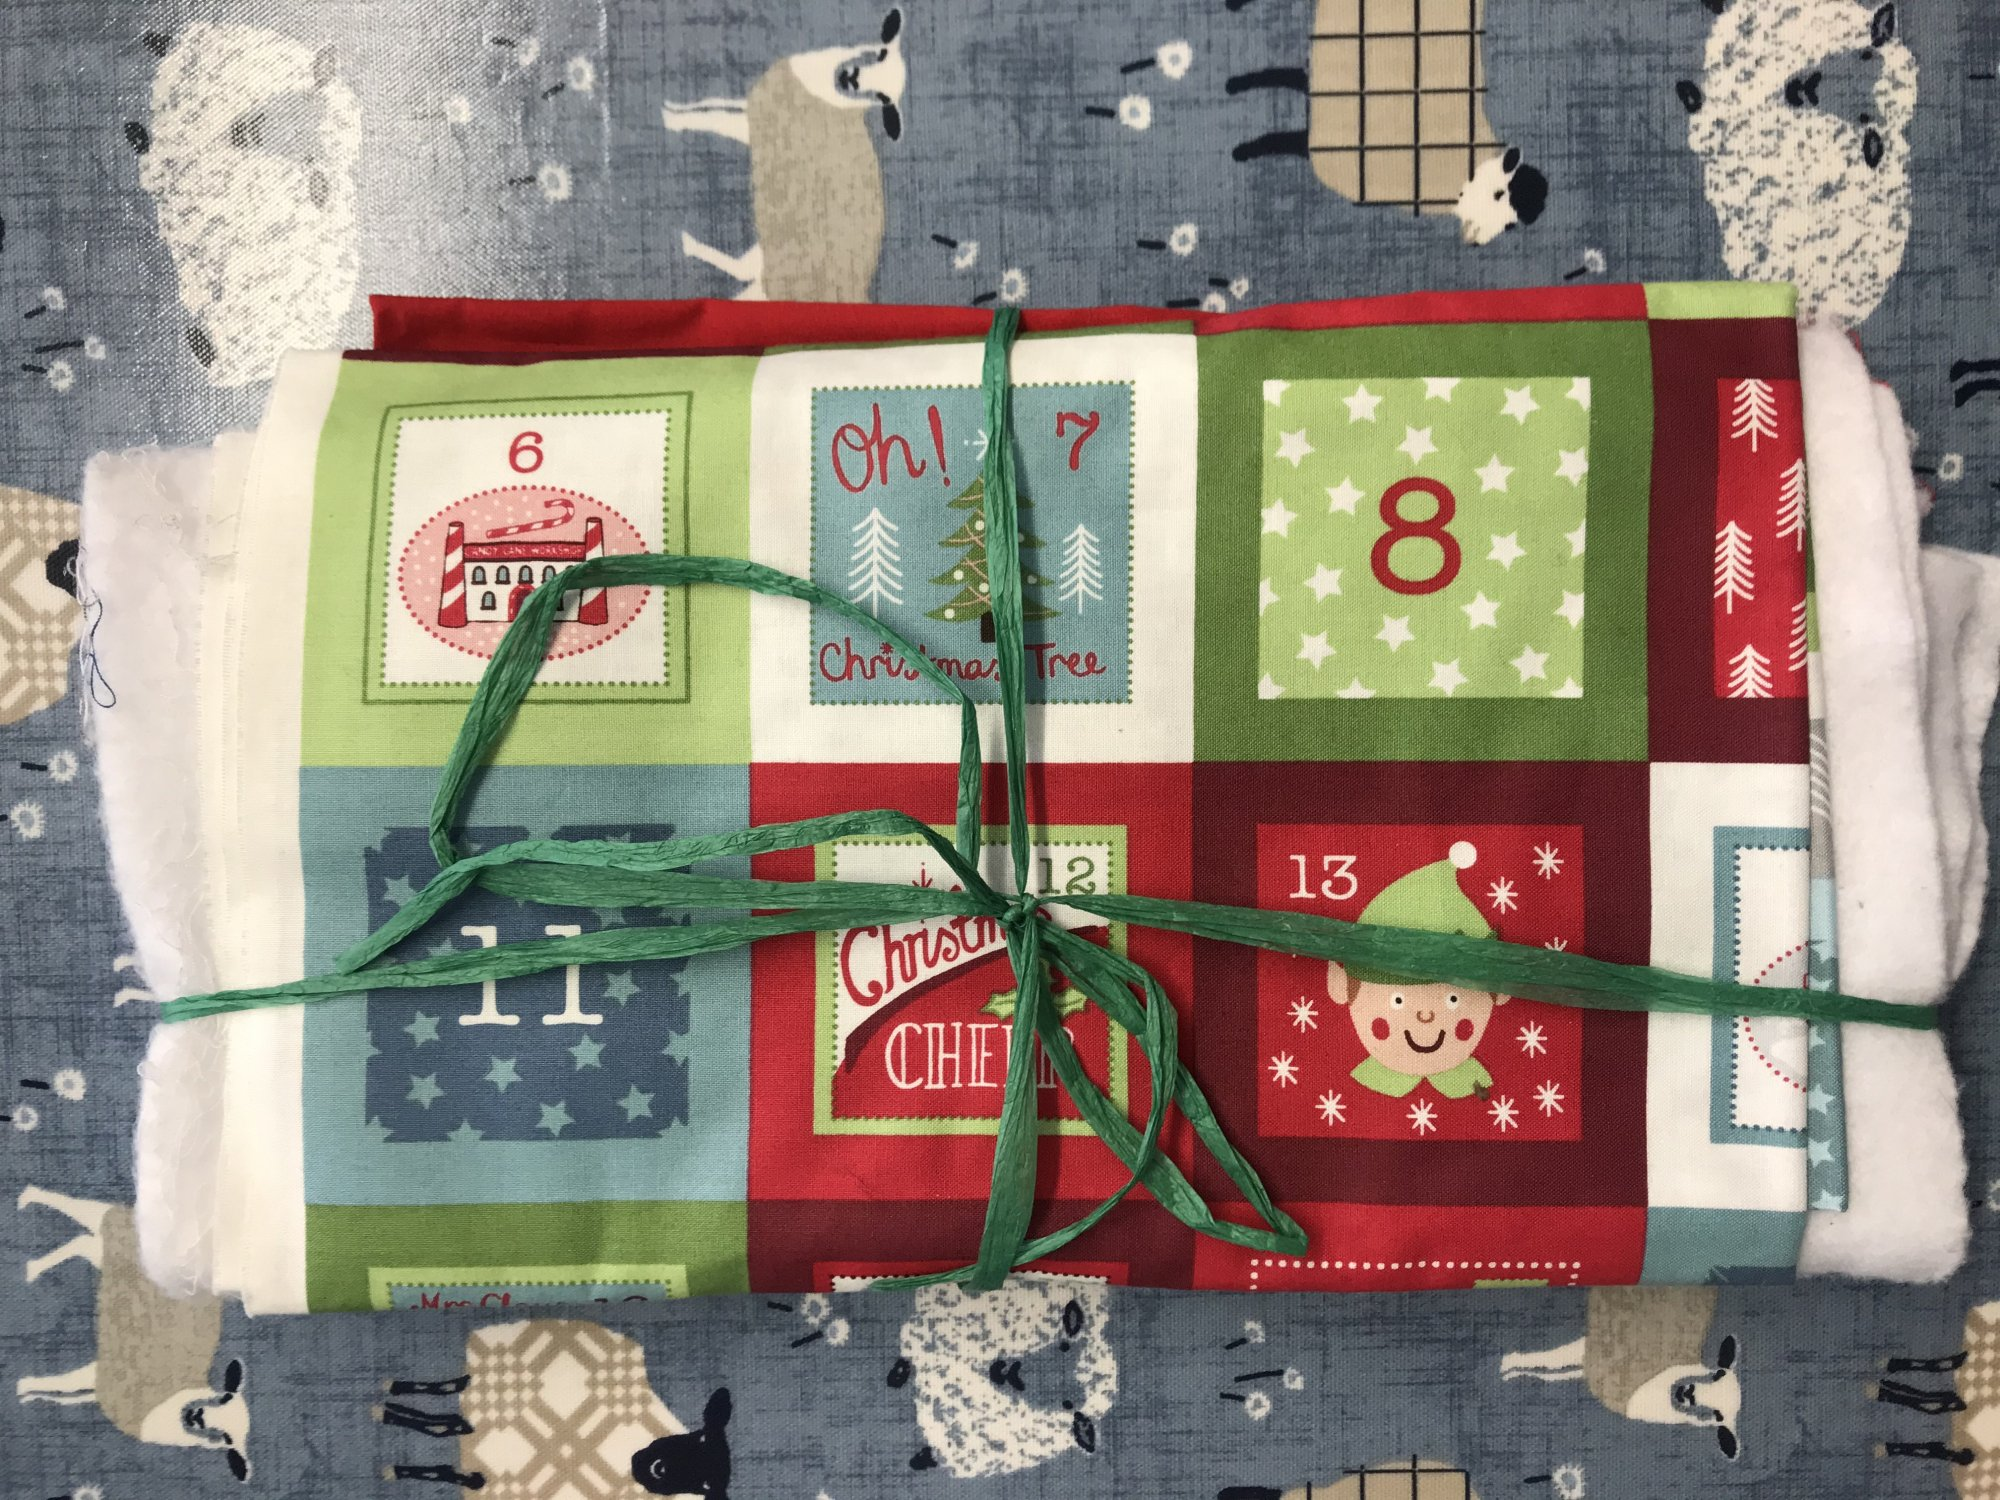 North Pole Advent Calendar by Lewis and Irene Kit